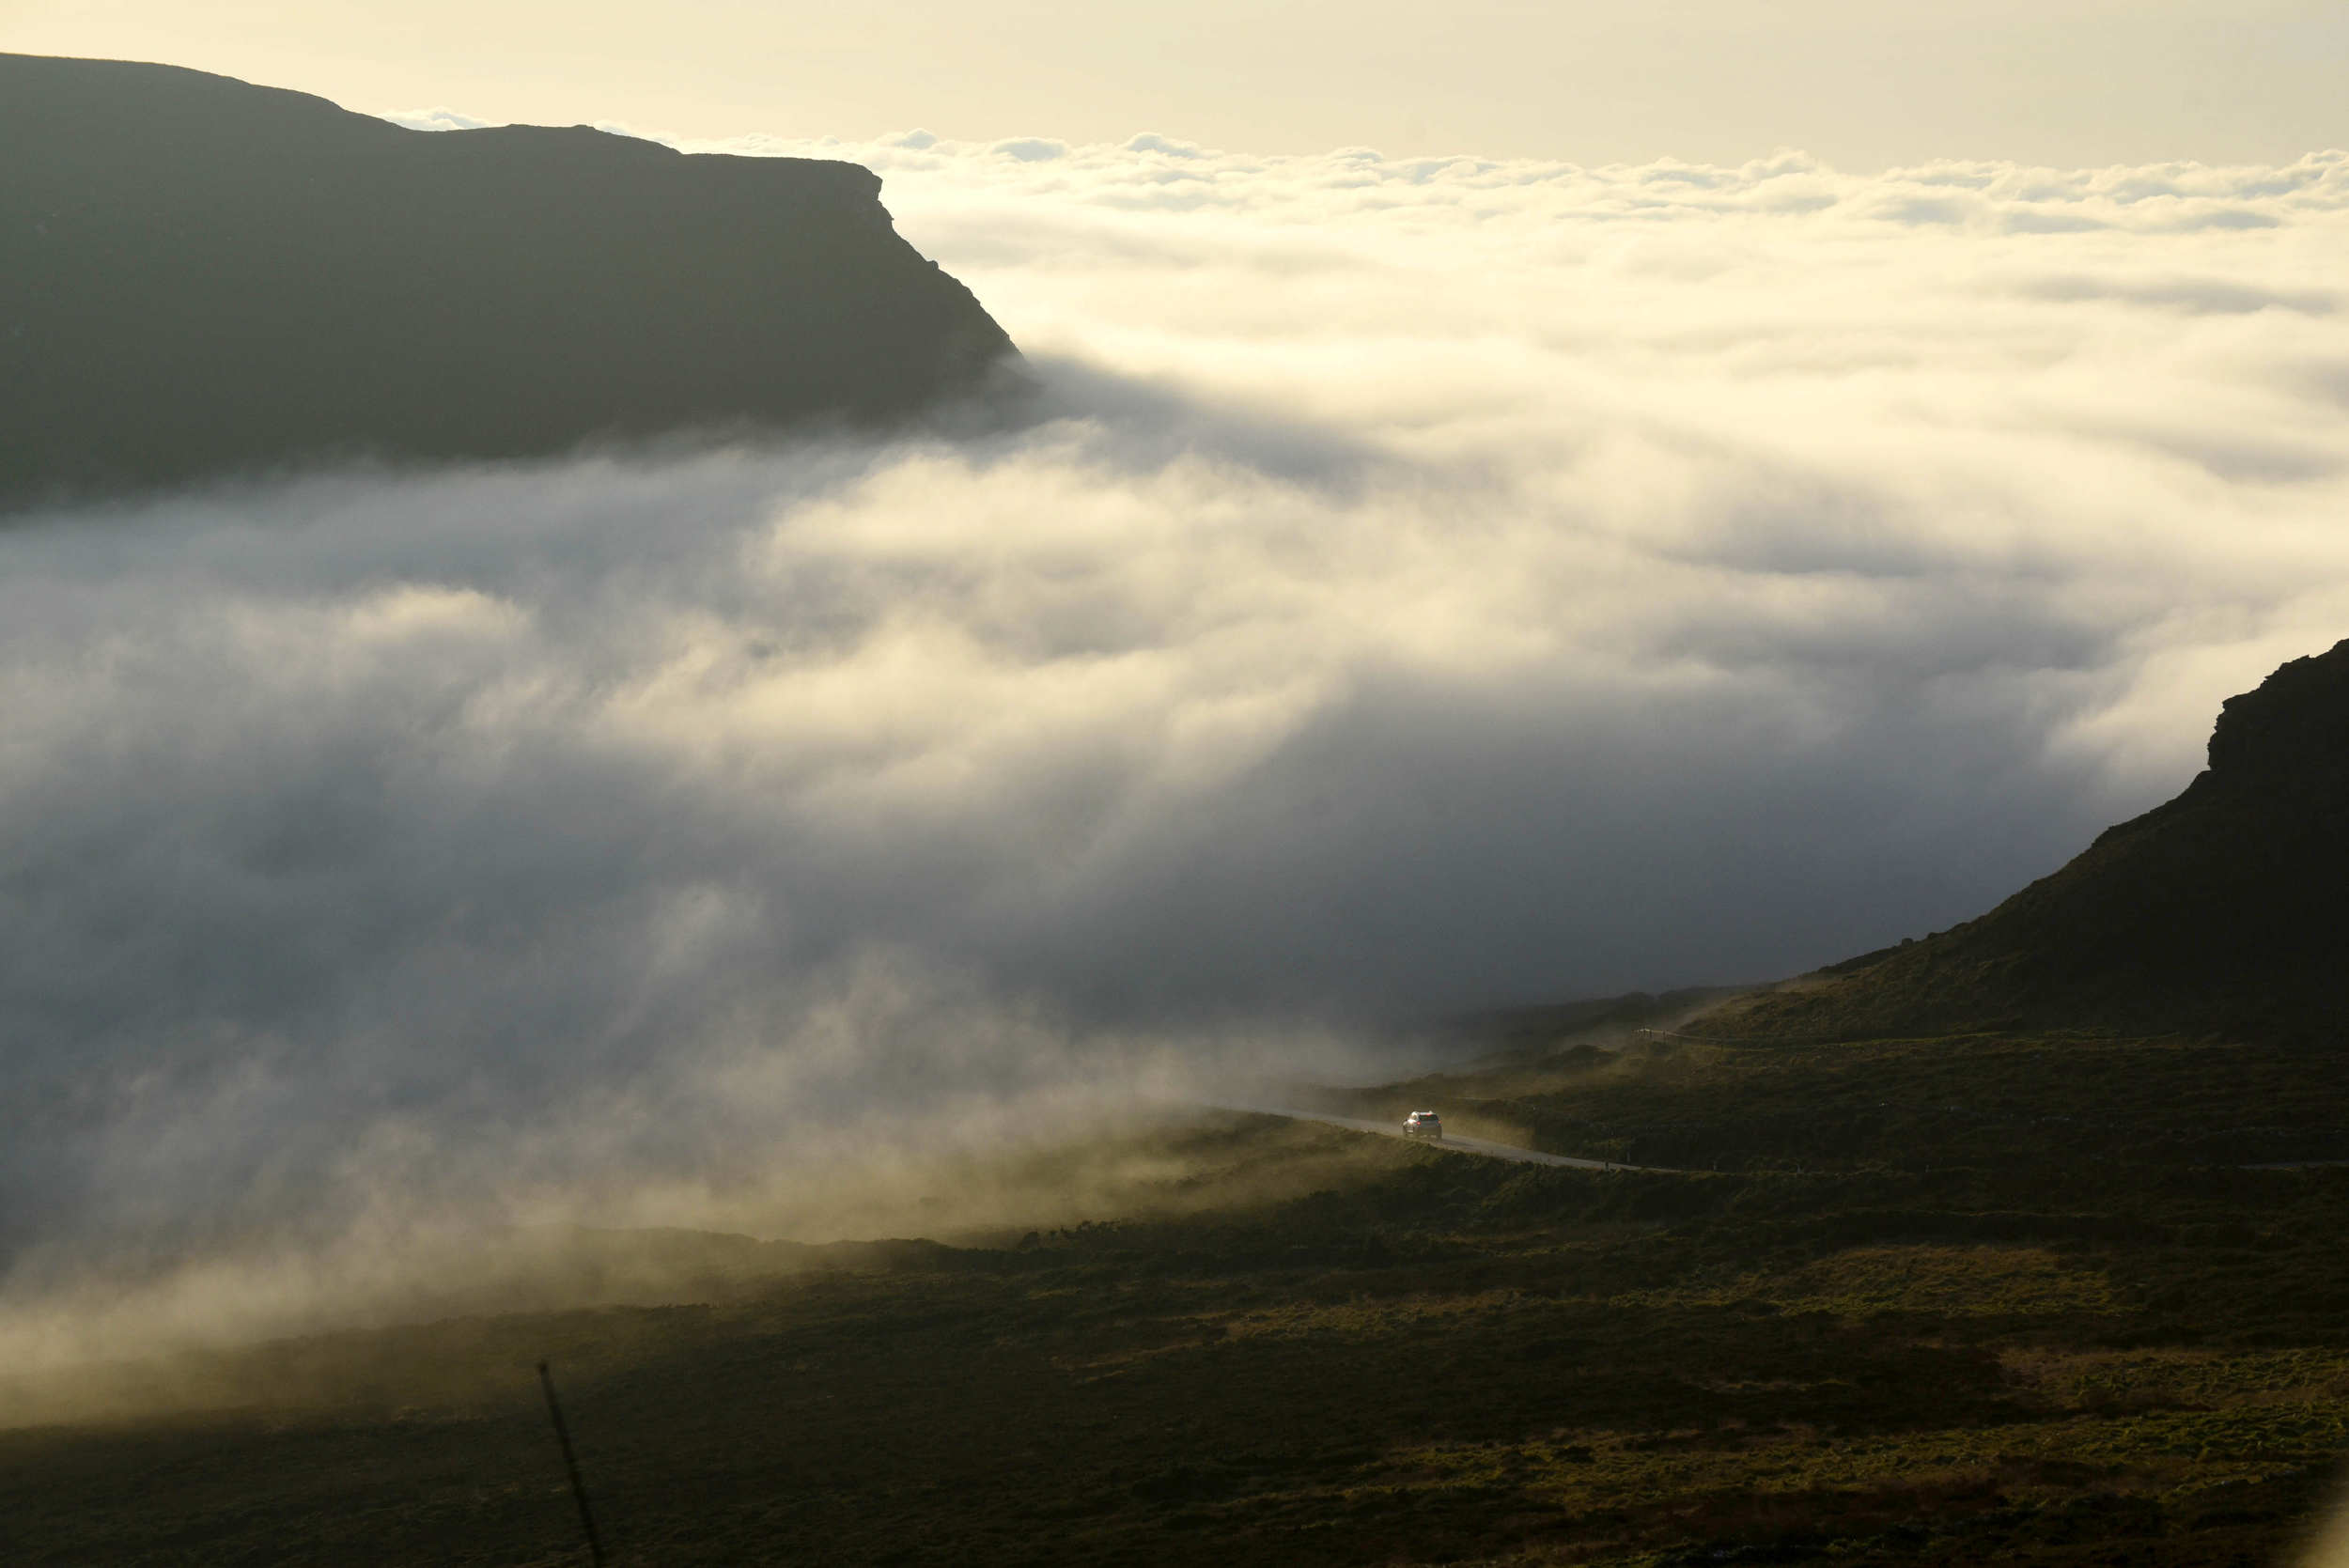 A fog bank obscures the road as it rolls through the Sloc valley